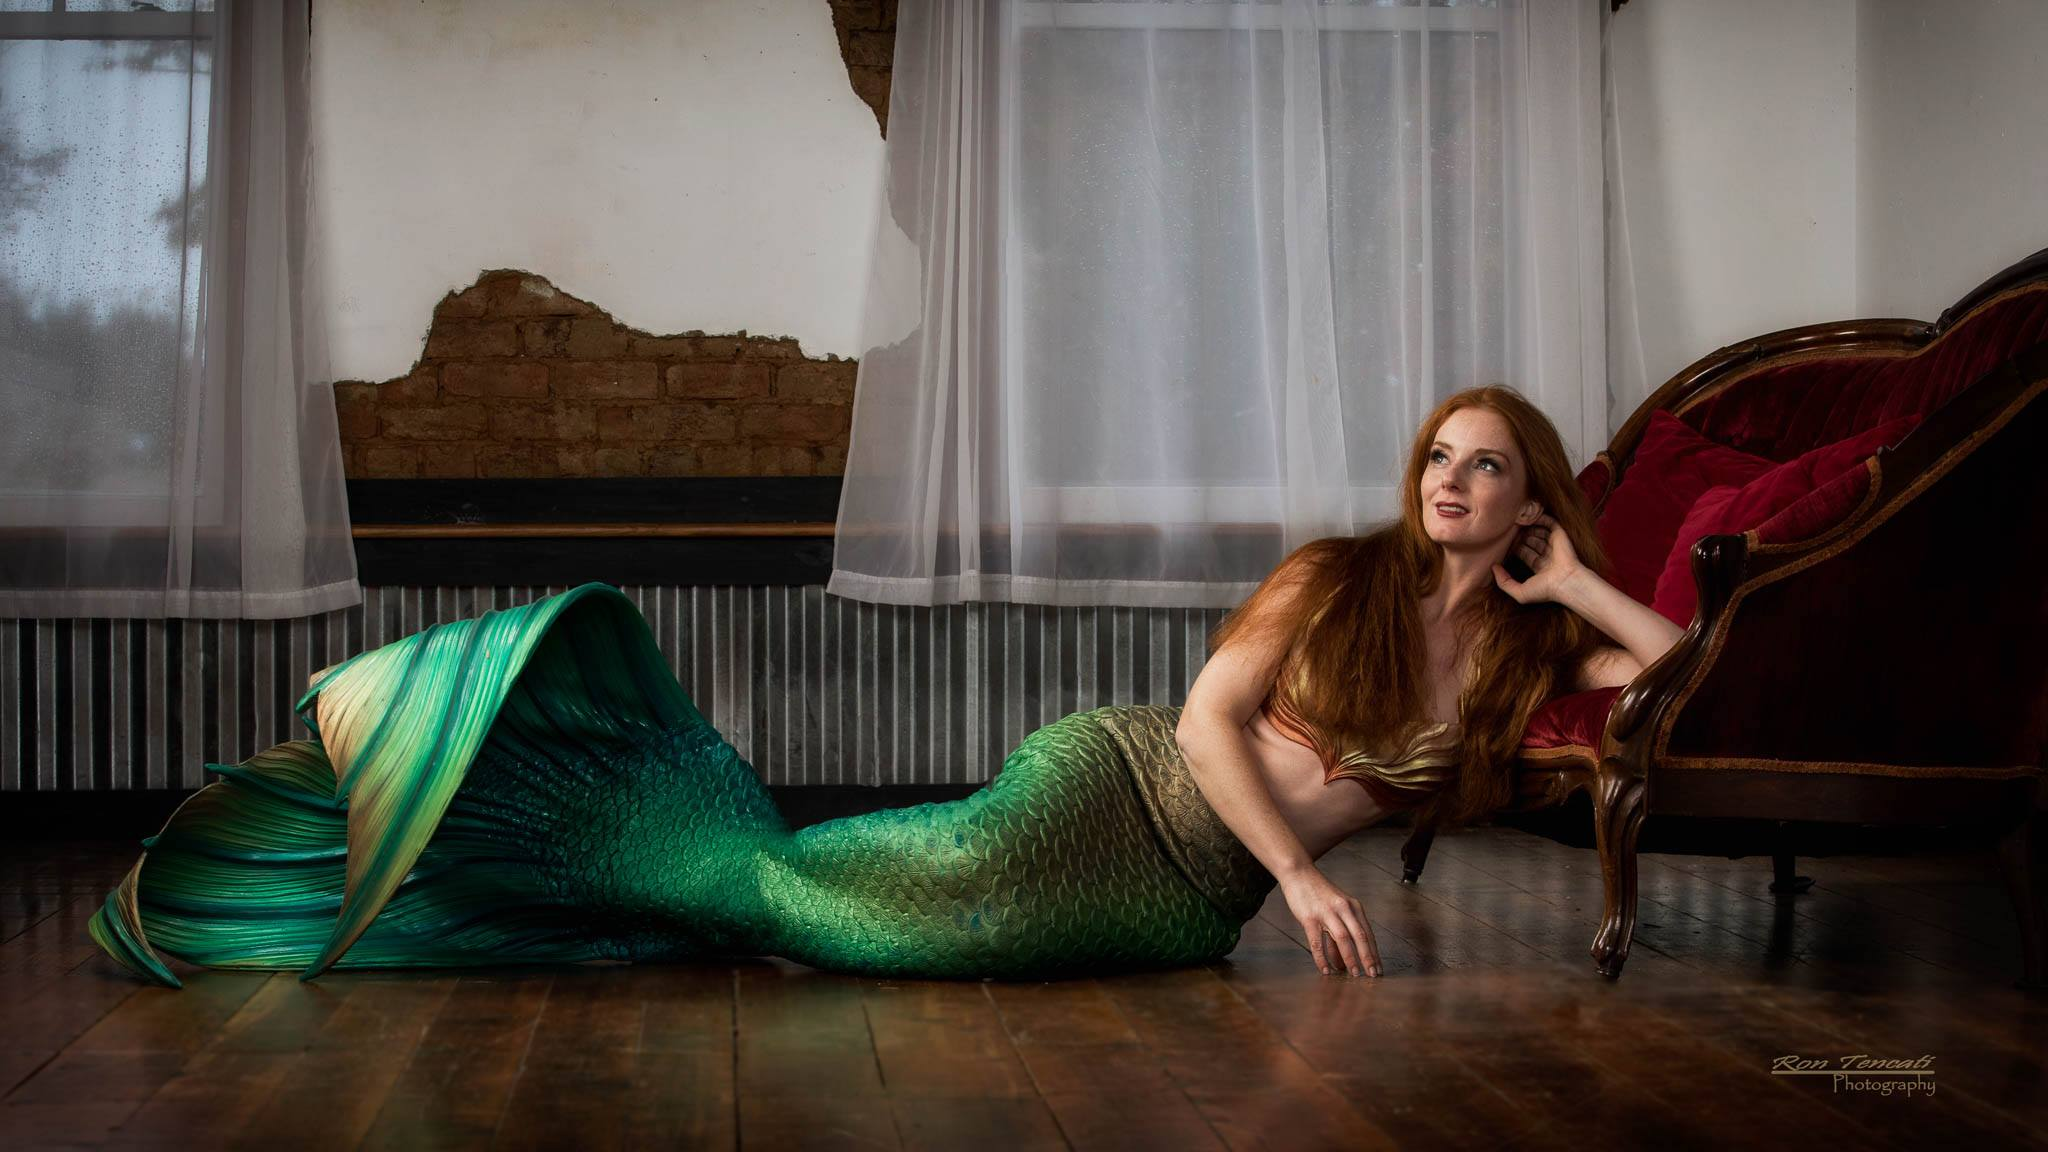 Green silicone mermaid tail photo by Ron Tencati